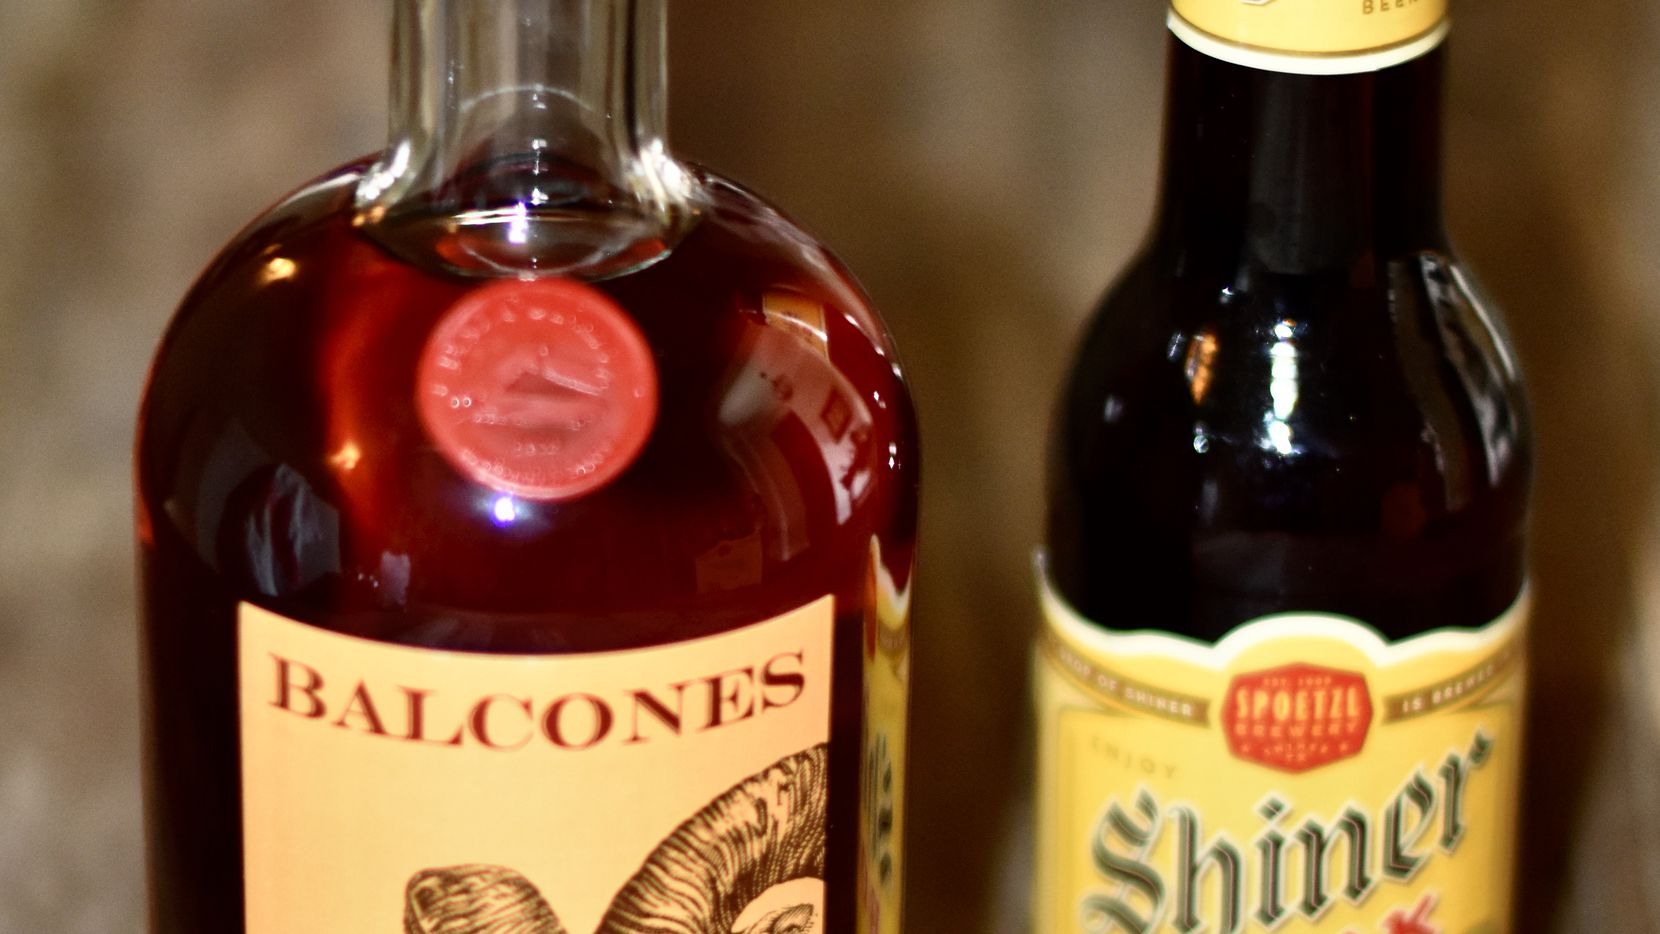 Balcones Distilling collaborates with brewer of Shiner Bock on special whisky